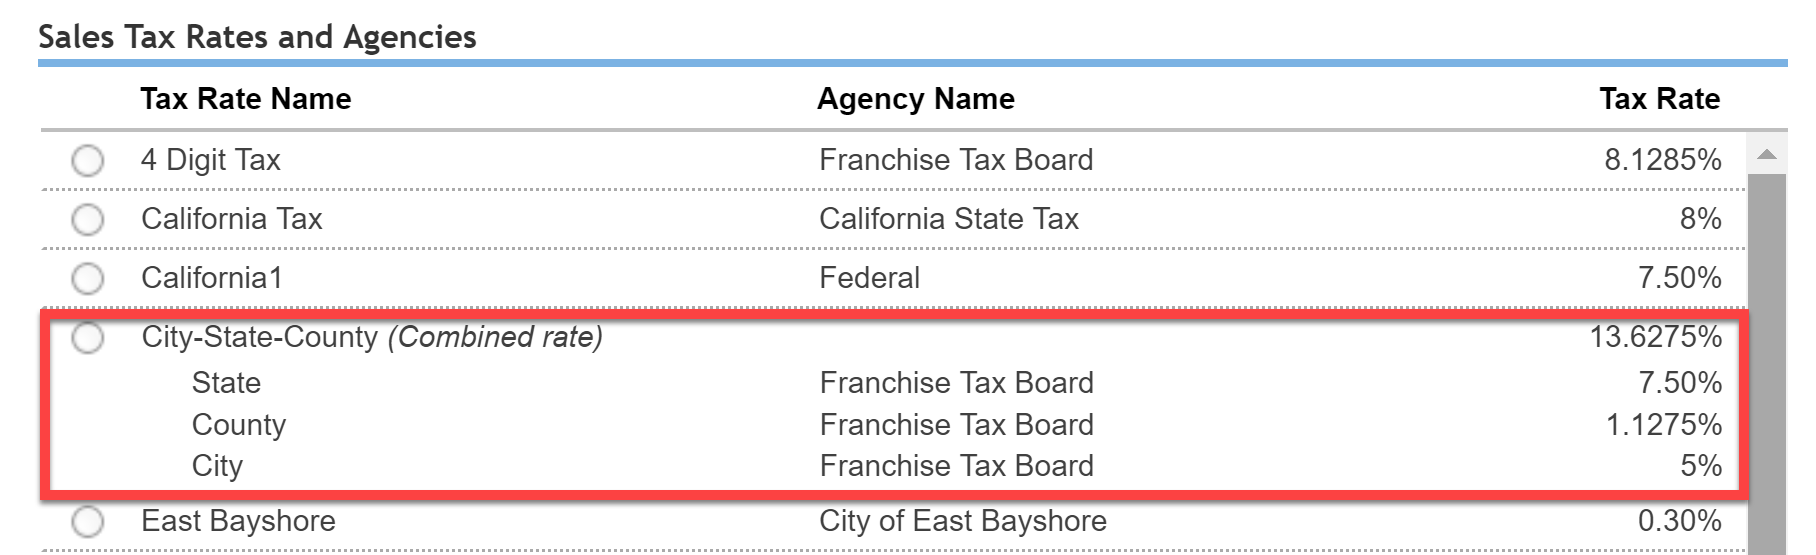 Sales Tax Groups and Combined Tax Rates - shopVOX Help